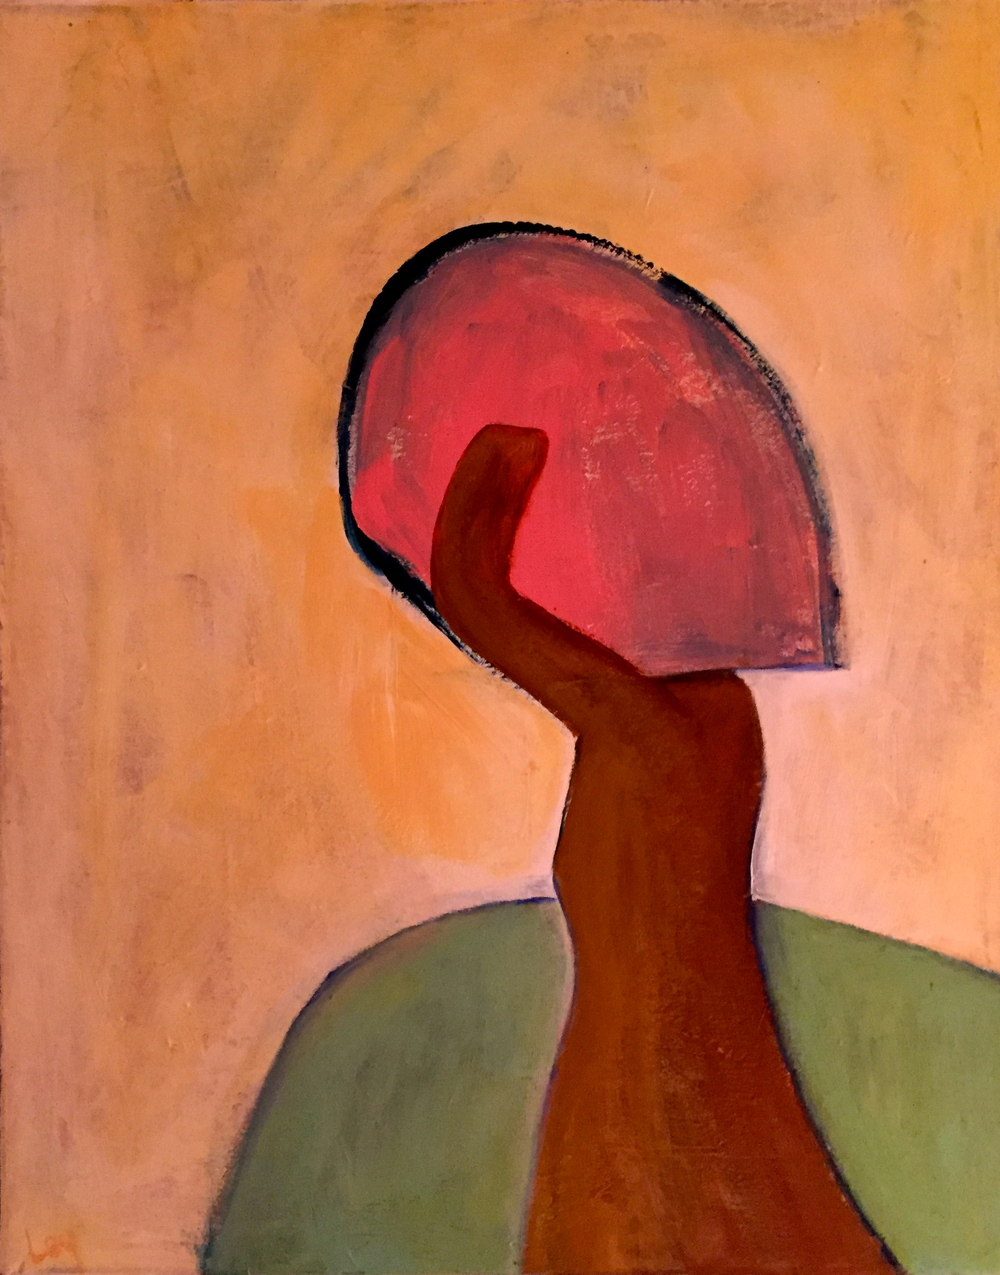 'Bunky's Burden' - my husband's icon of my struggles this last summer. Bunky is his nick name for me - it is the burden of the heart...